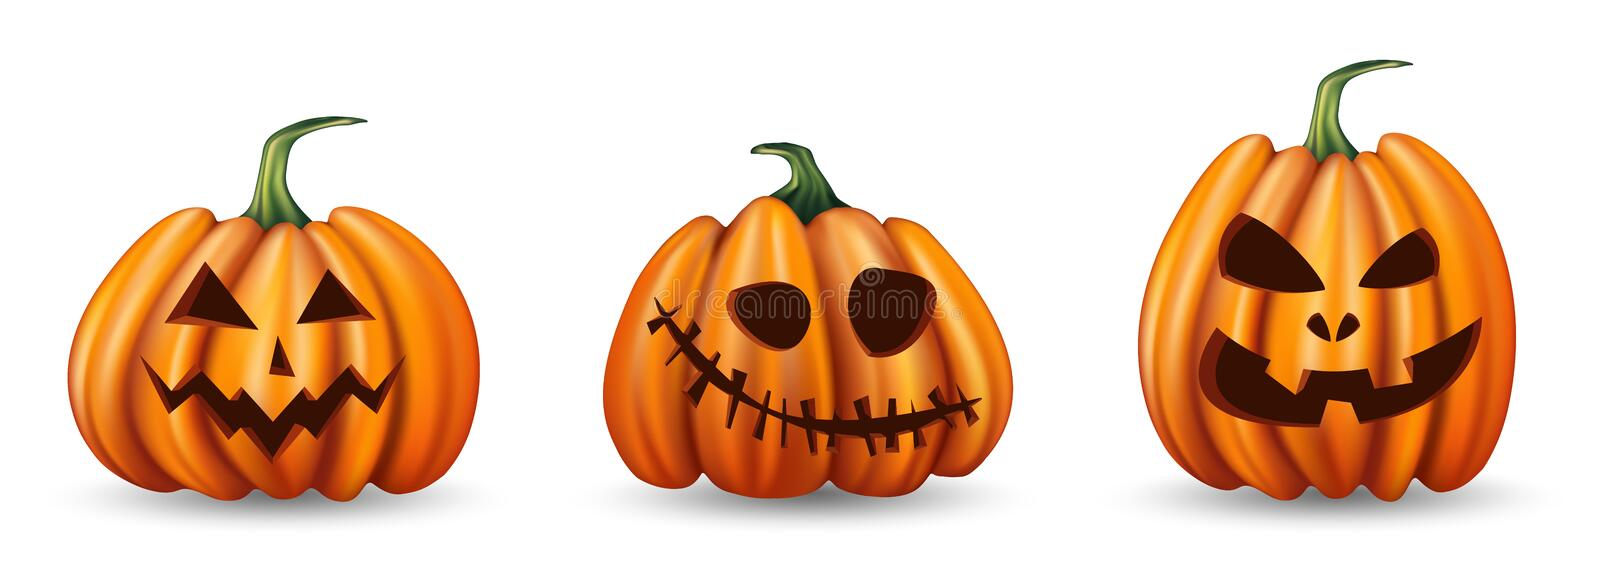 Set of halloween pumpkins with funny faces on white background royalty free illustration